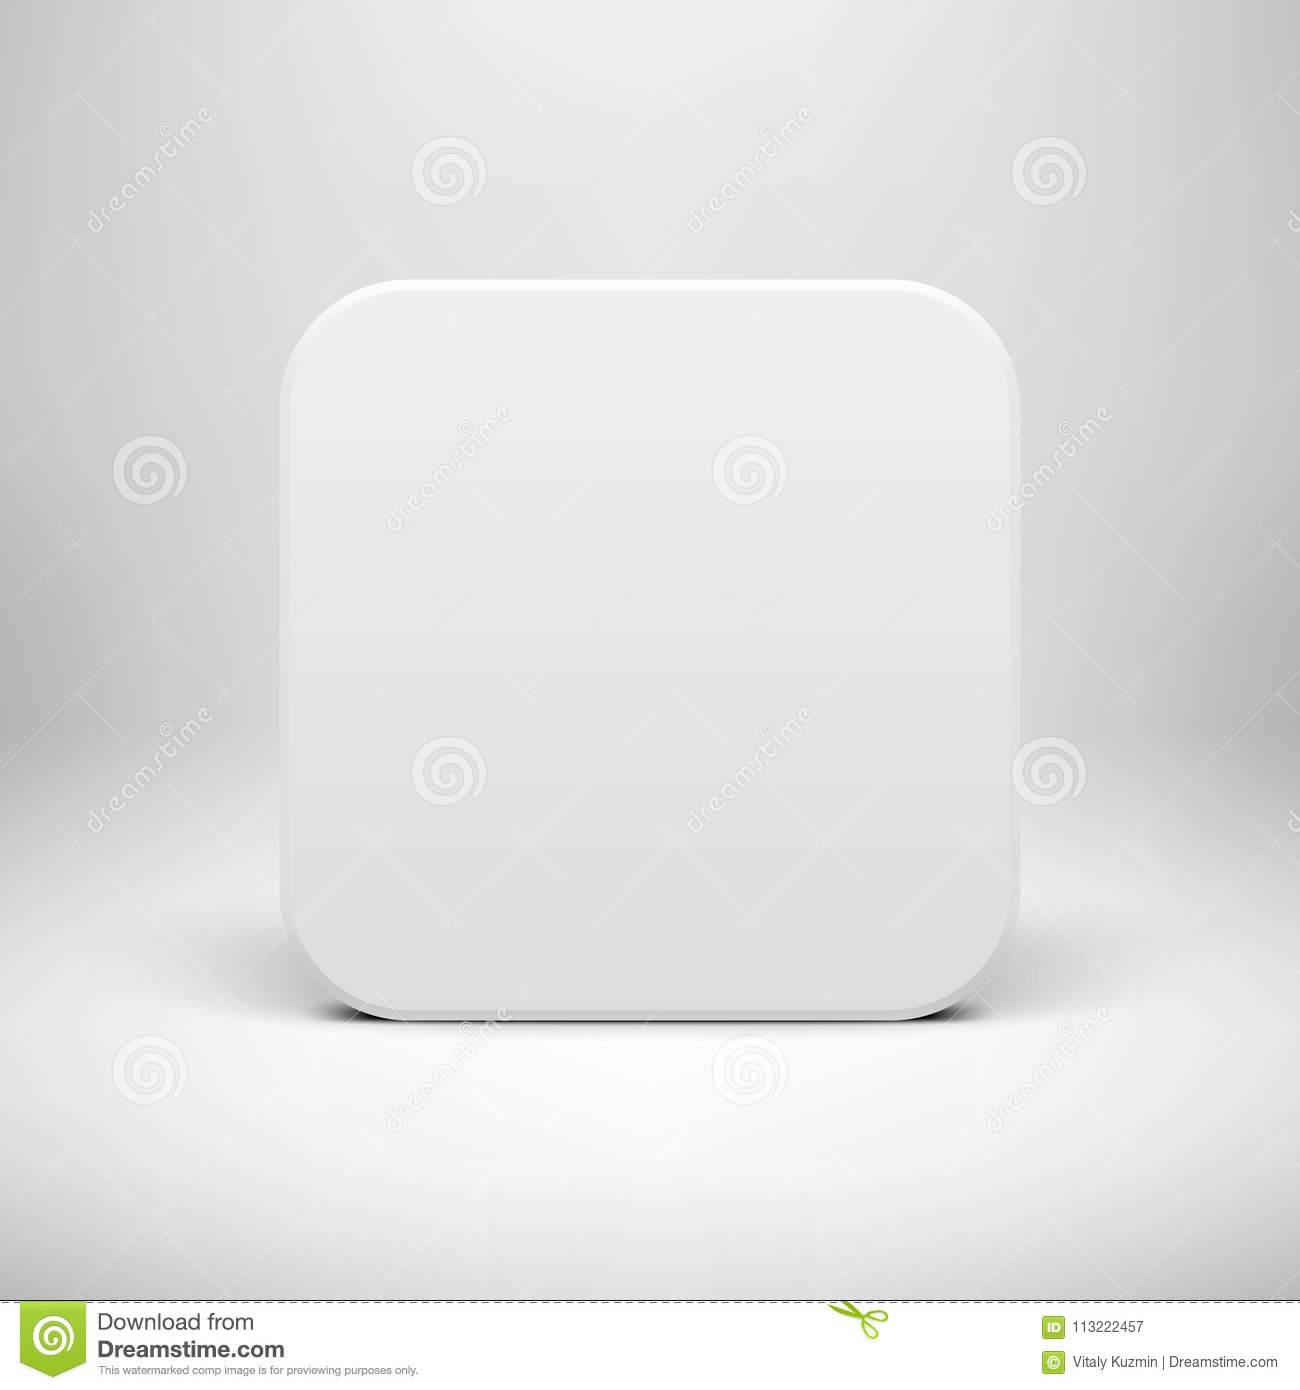 White Blank App Icon Button Template Stock Vector - Illustration of ...